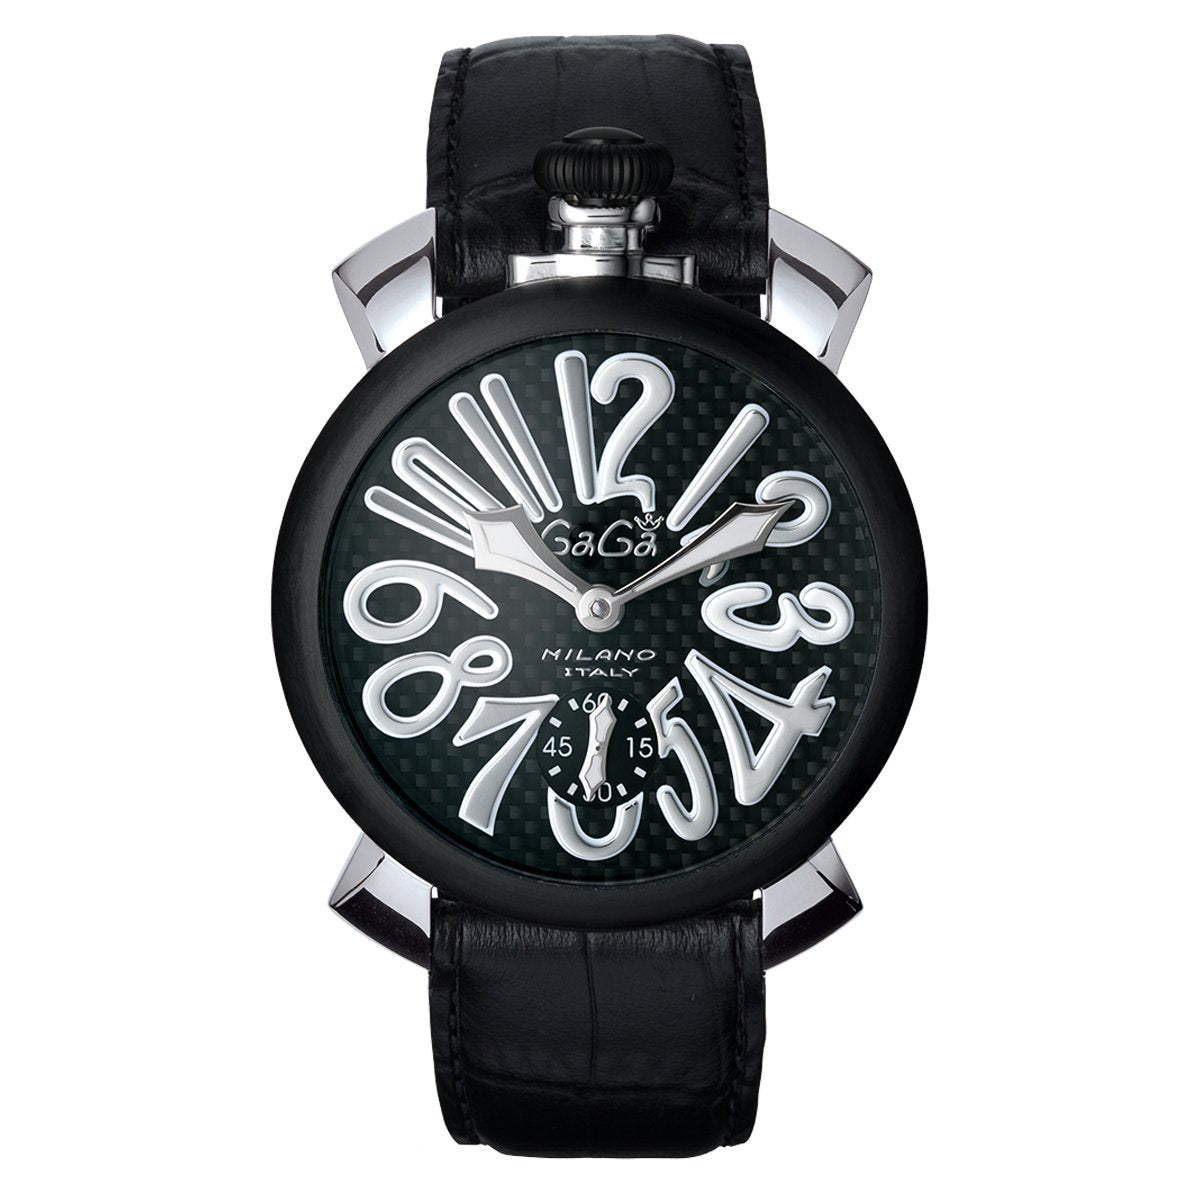 GaGà Milano Manuale 48MM Black Carbon - Watches & Crystals